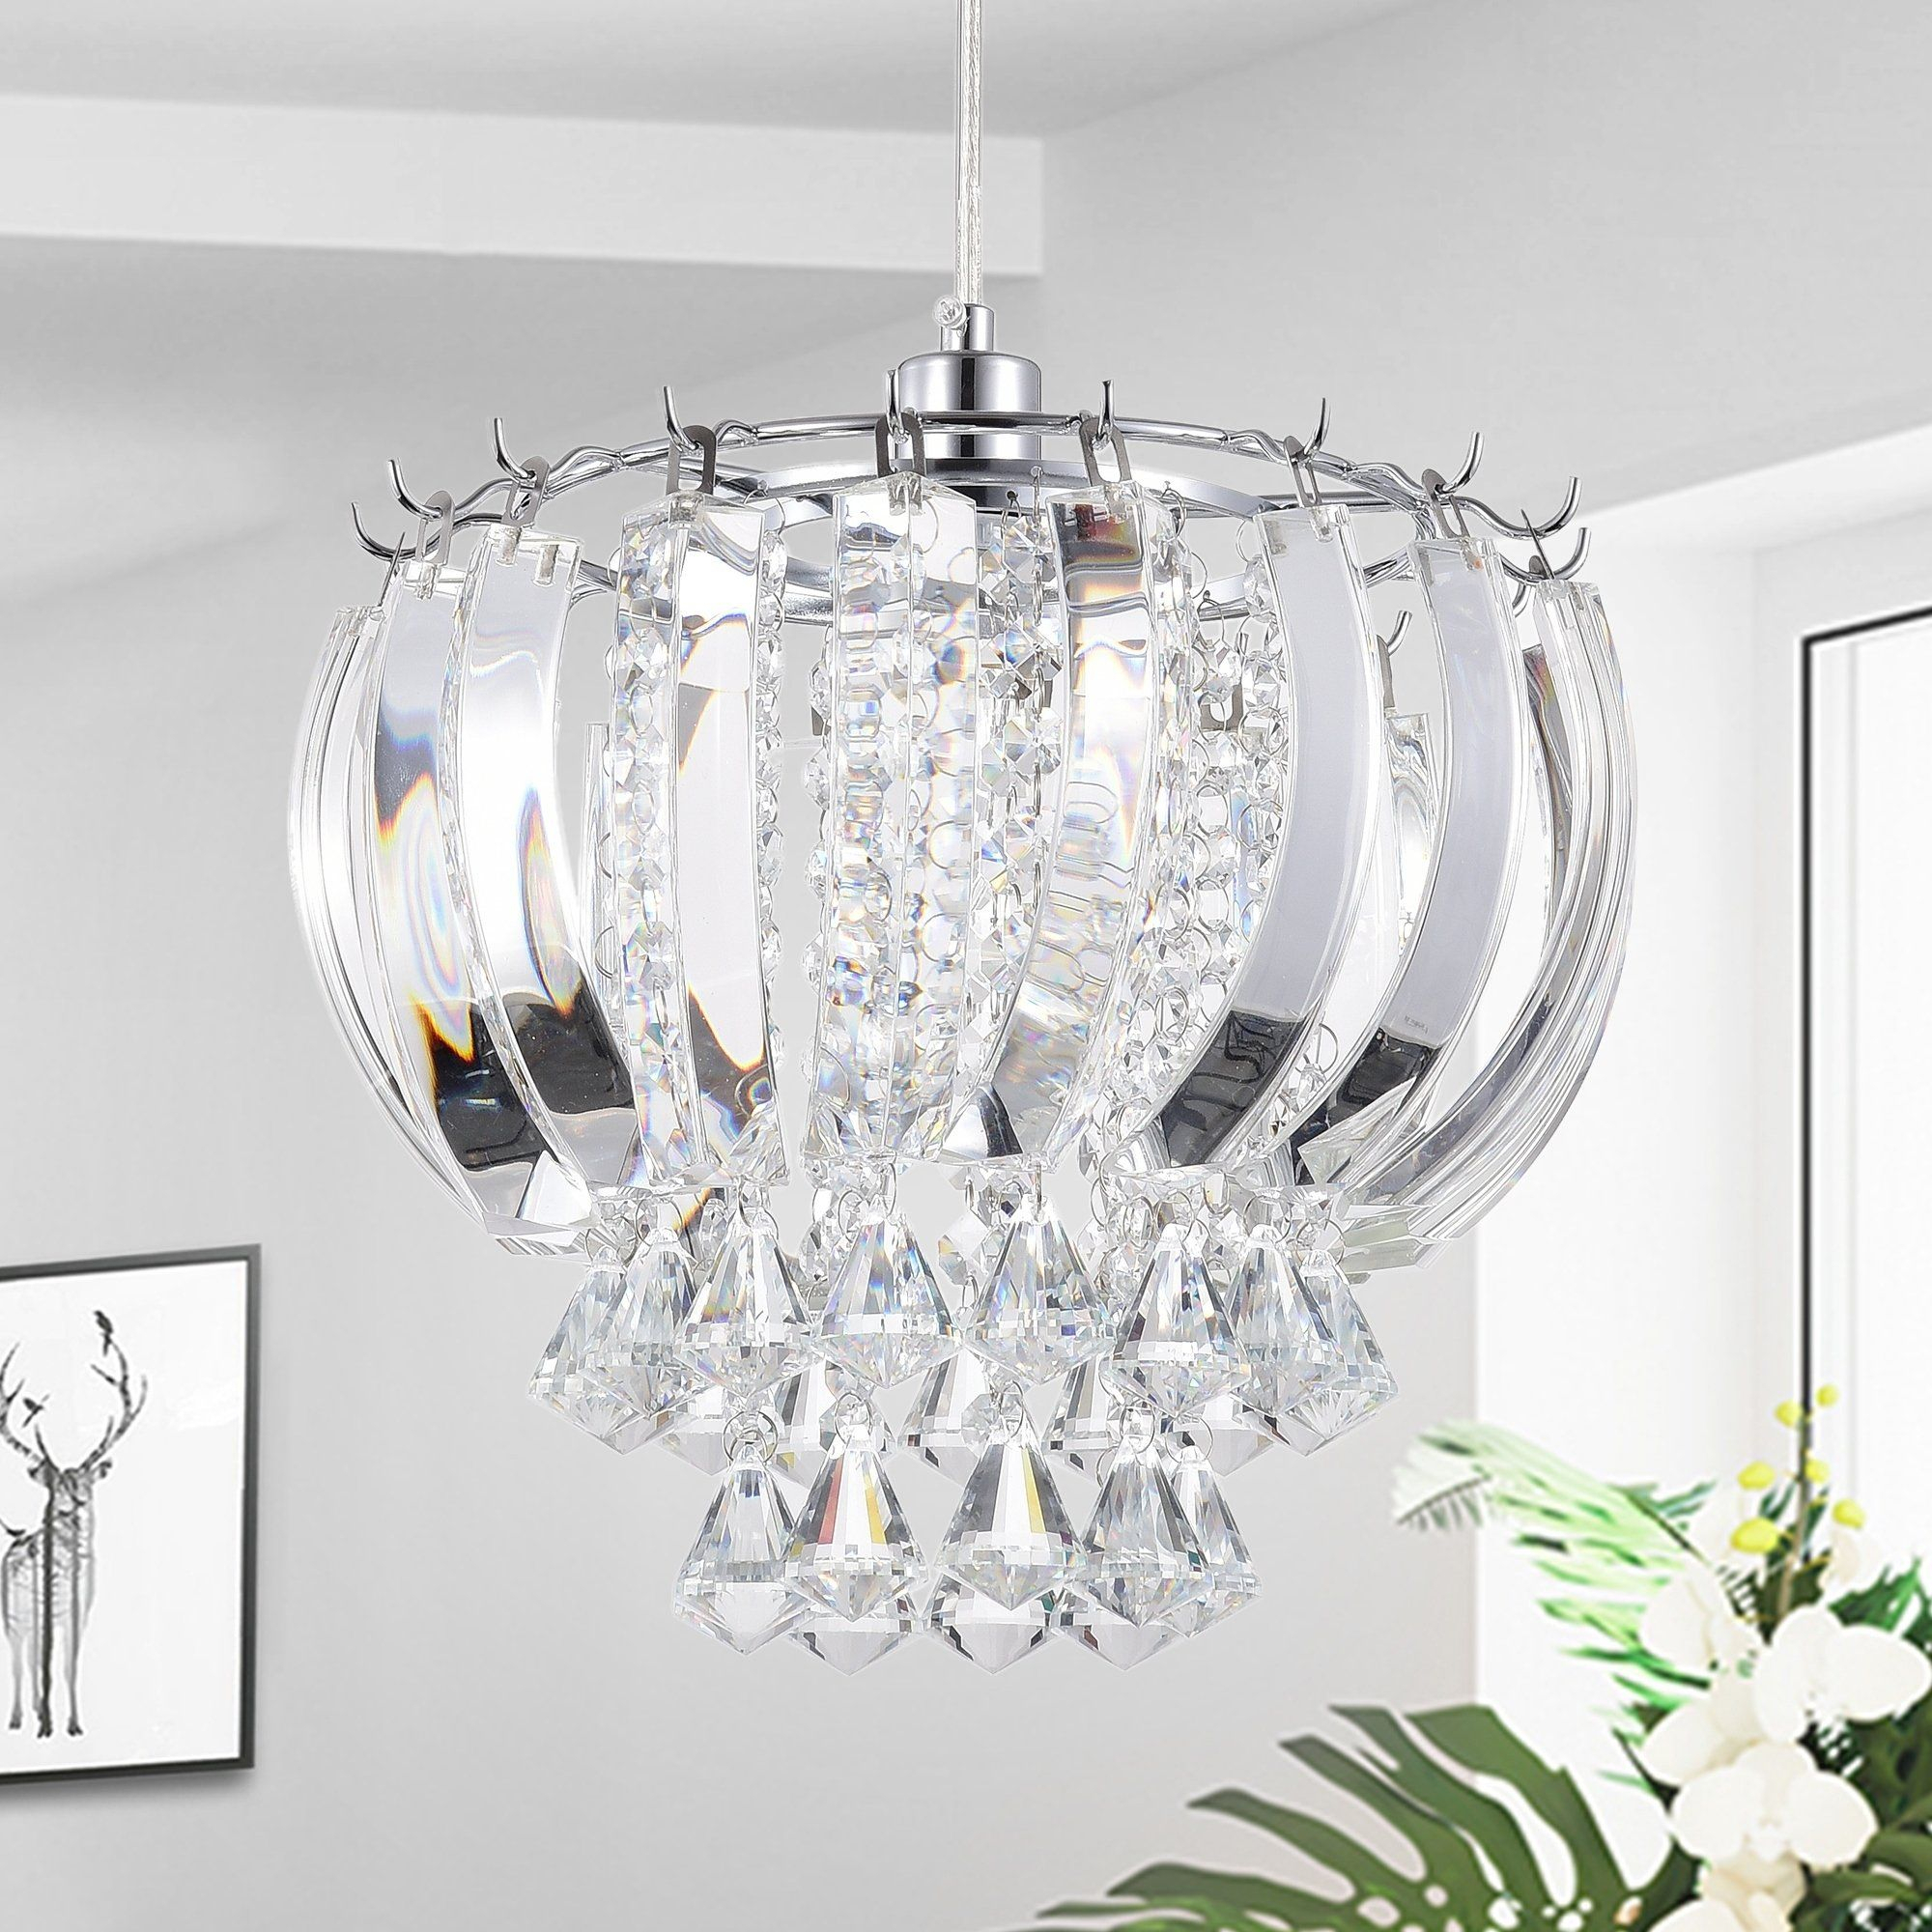 Elfman 1 Light Crystal Hanging Pendant | Products In 2019 With Regard To Edmundo 1 Light Unique / Statement Geometric Pendants (Photo 5 of 30)